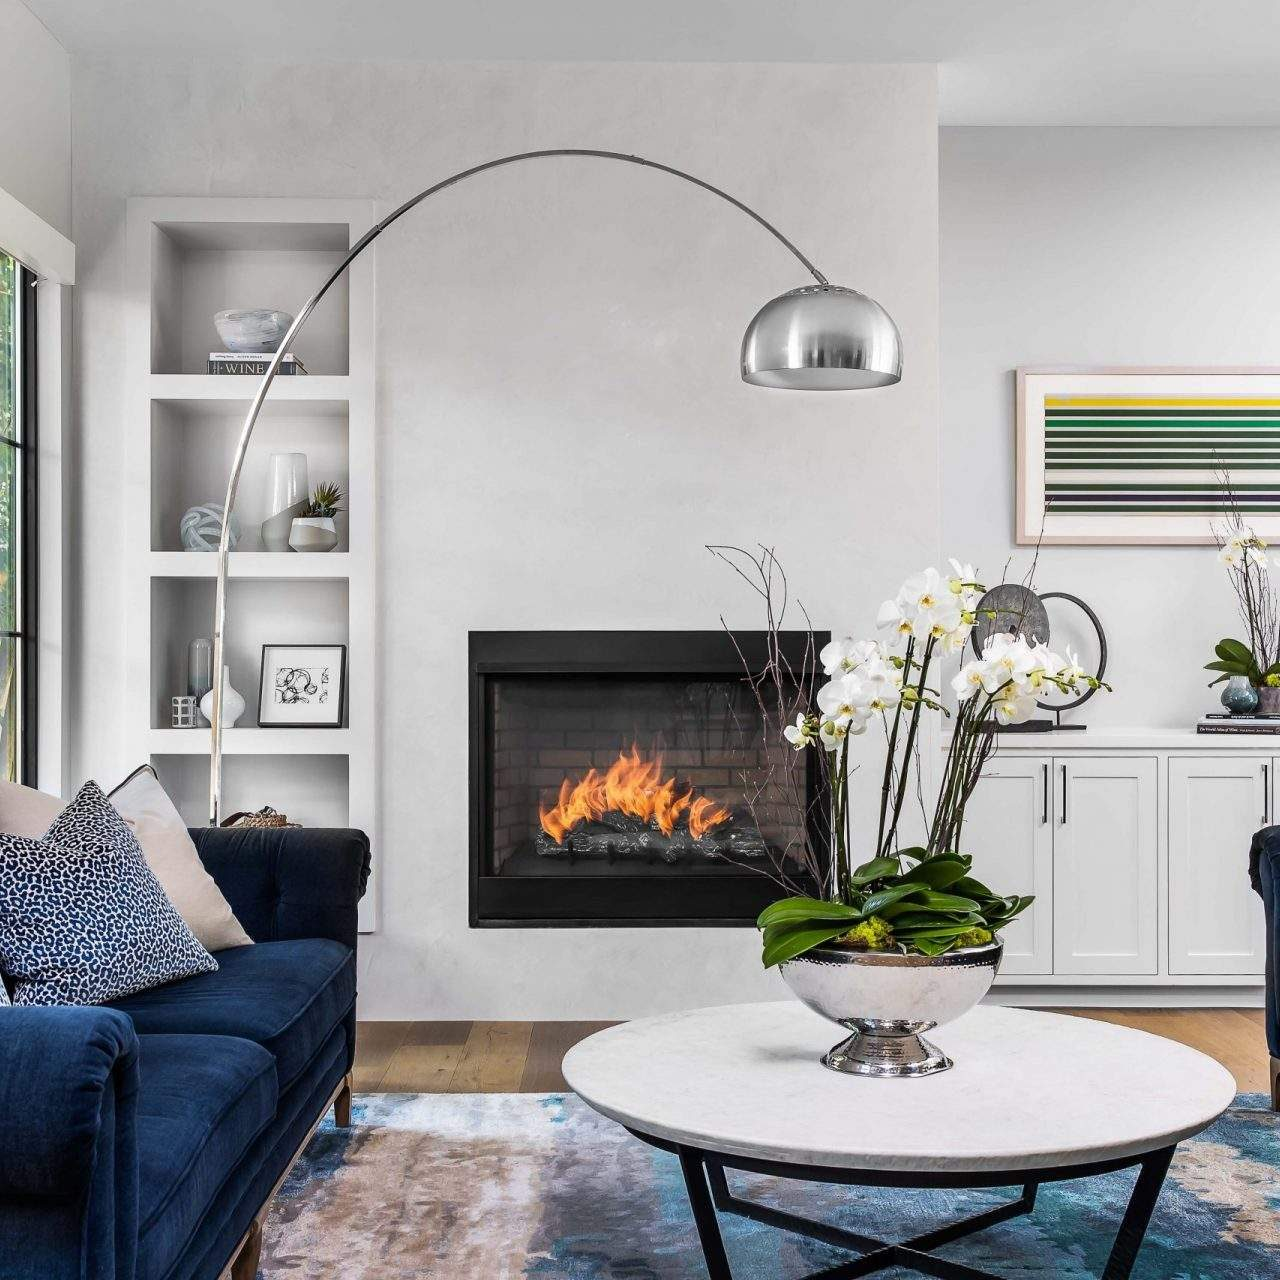 Interior Design, Blue Sofas, fireplace, and large silver floor lamp